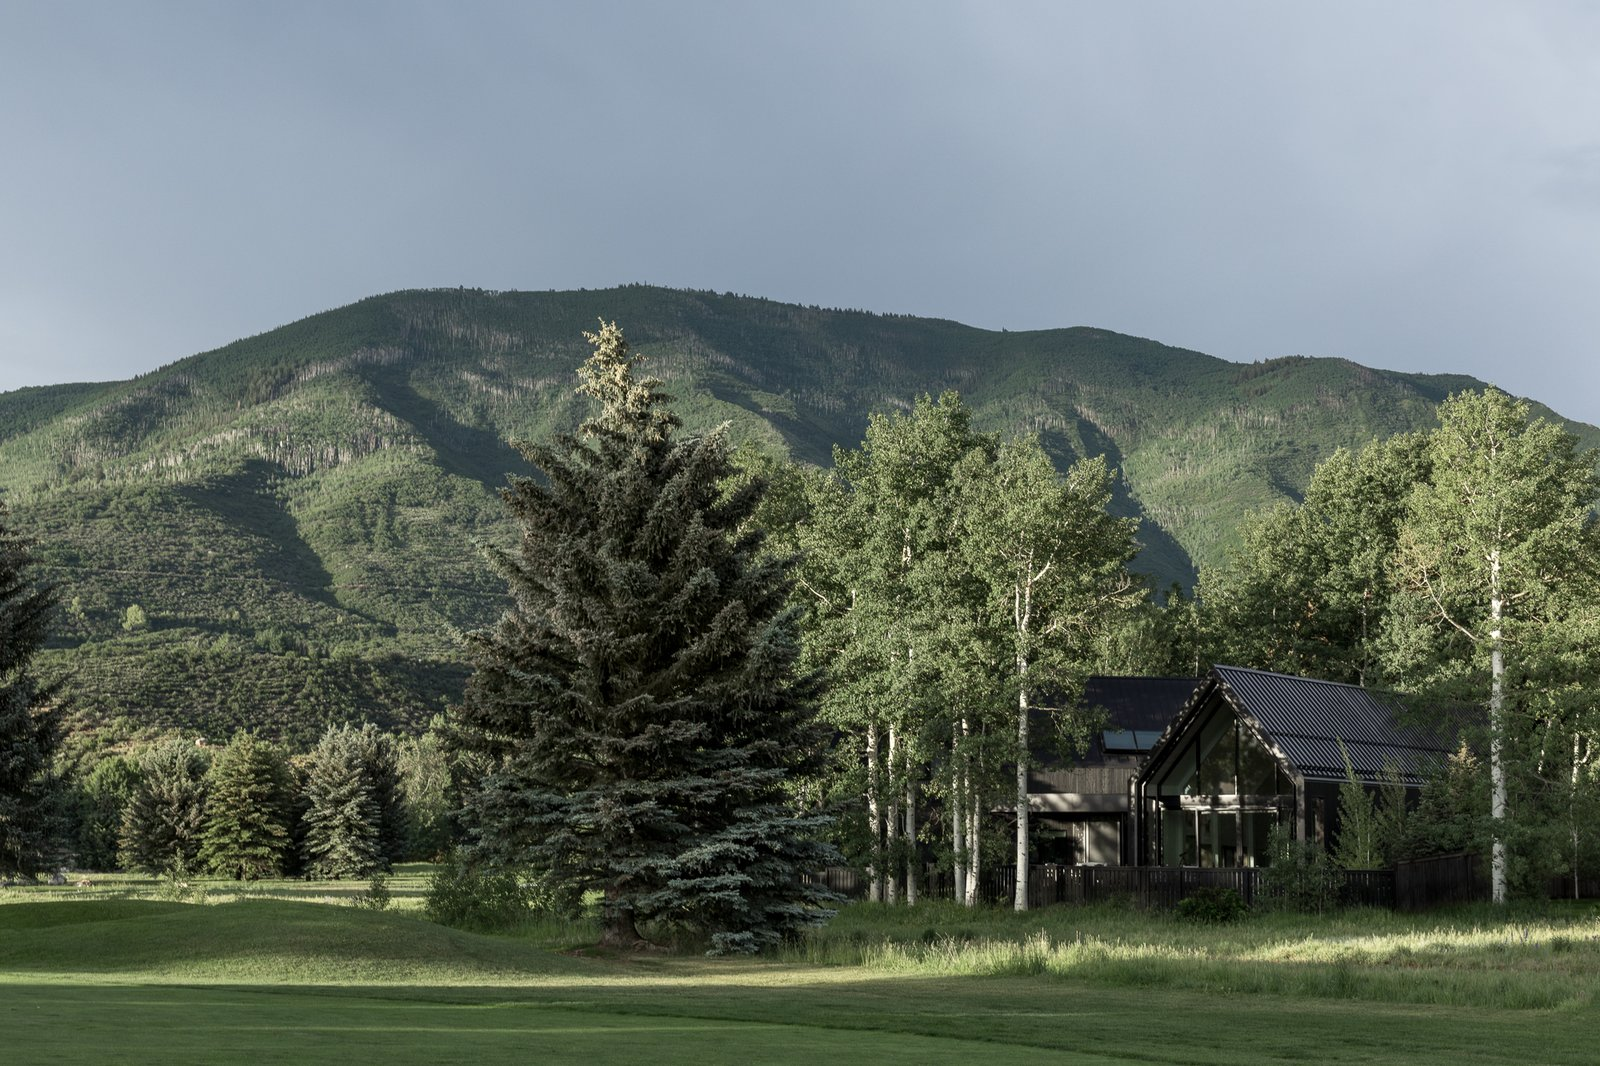 Exterior, Wood, Metal, Metal, Farmhouse, Gable, House, and Glass  Exterior Metal Farmhouse Photos from A Modern Farmhouse in the Colorado Mountains Teems With Art